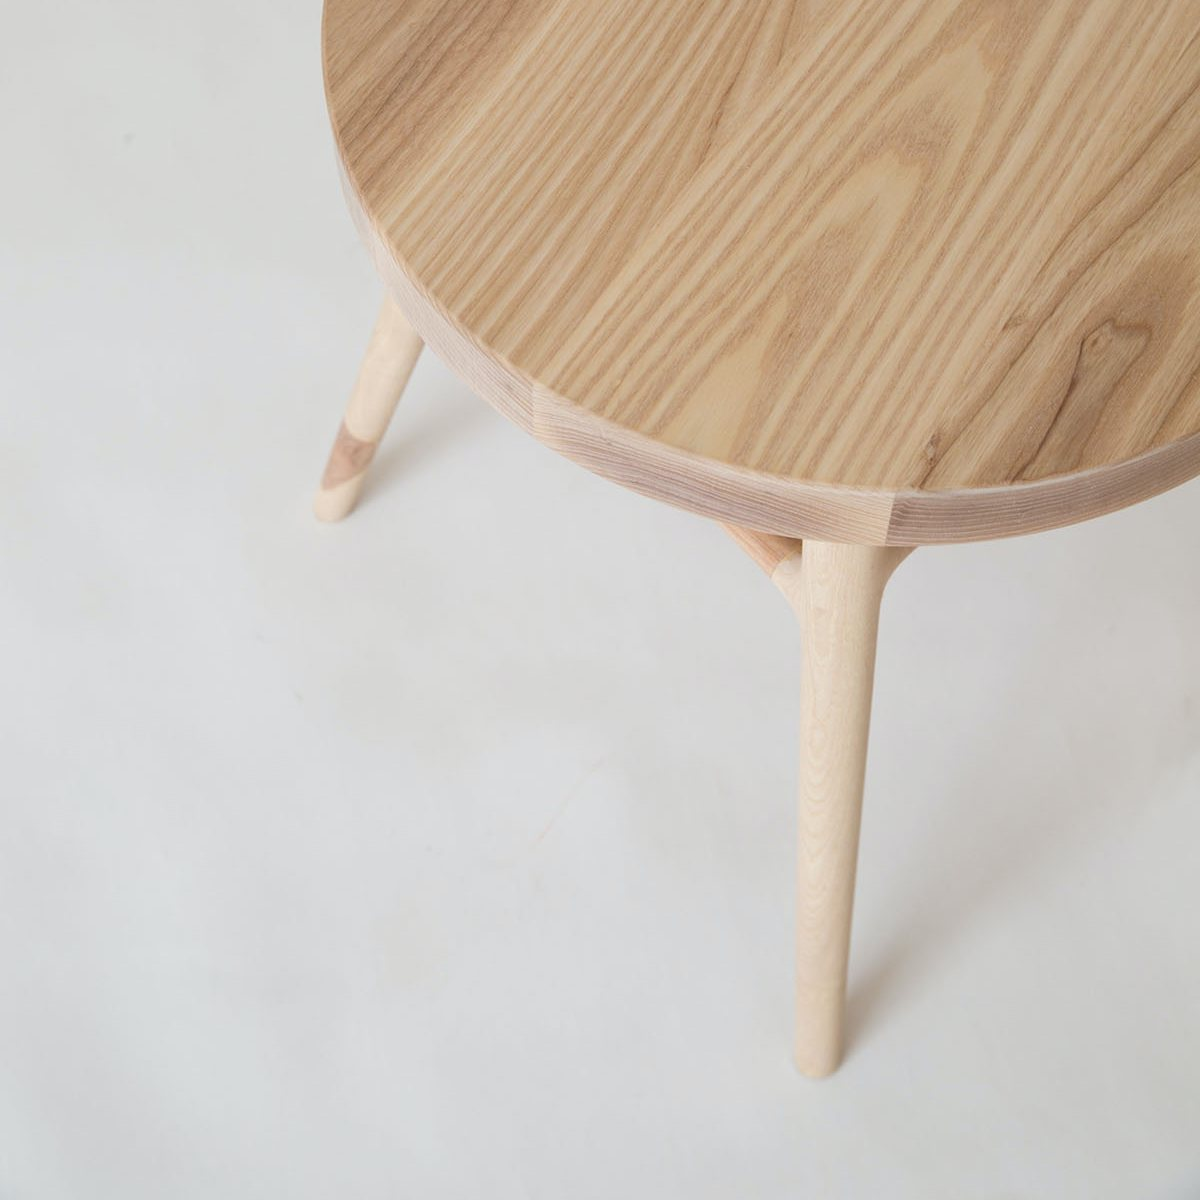 Bough Stool, top view.